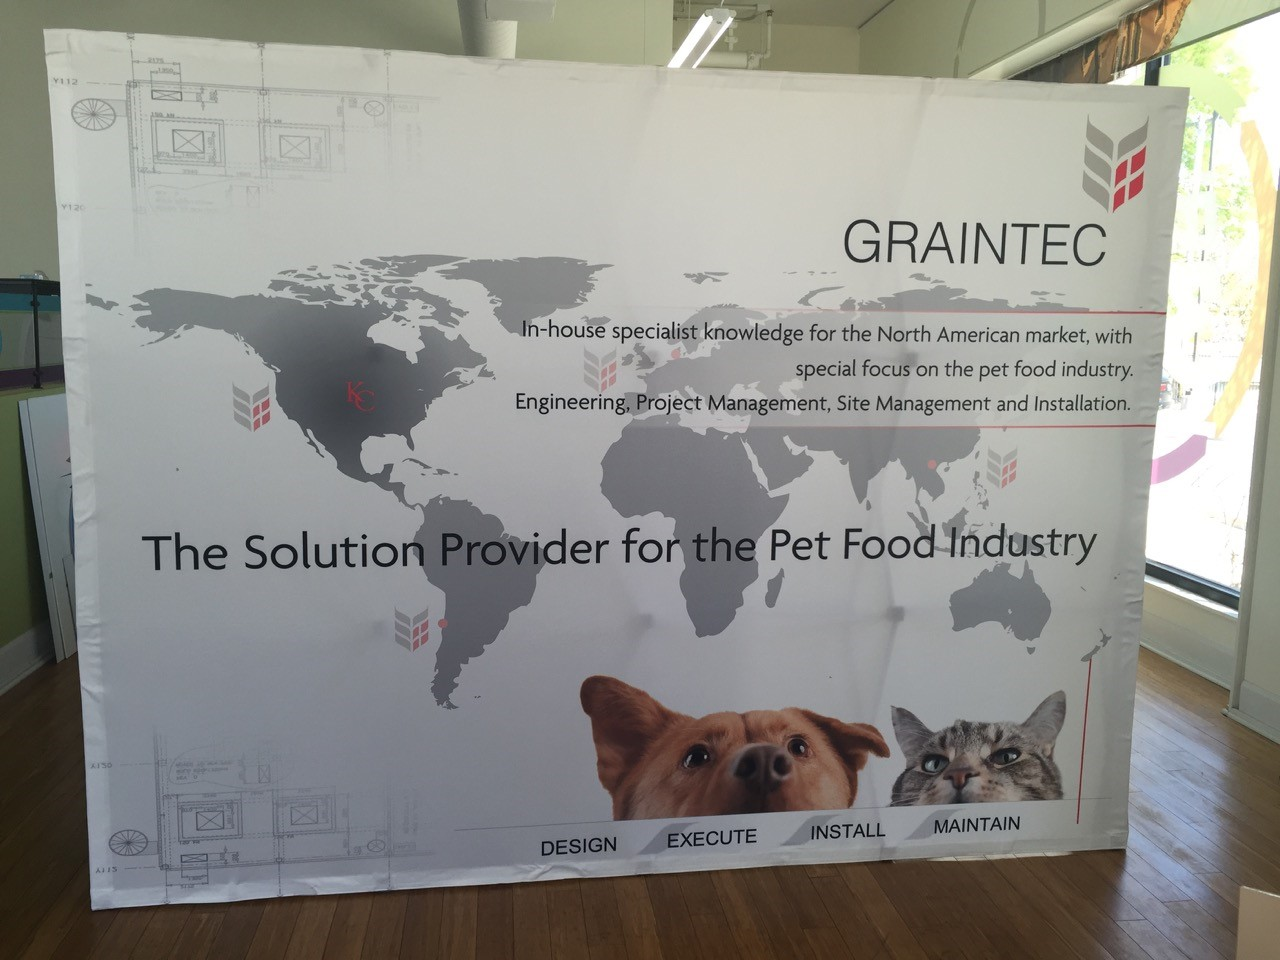 Custom Fabric Tradeshow Backdrop for Graintec in Kansas City, KS